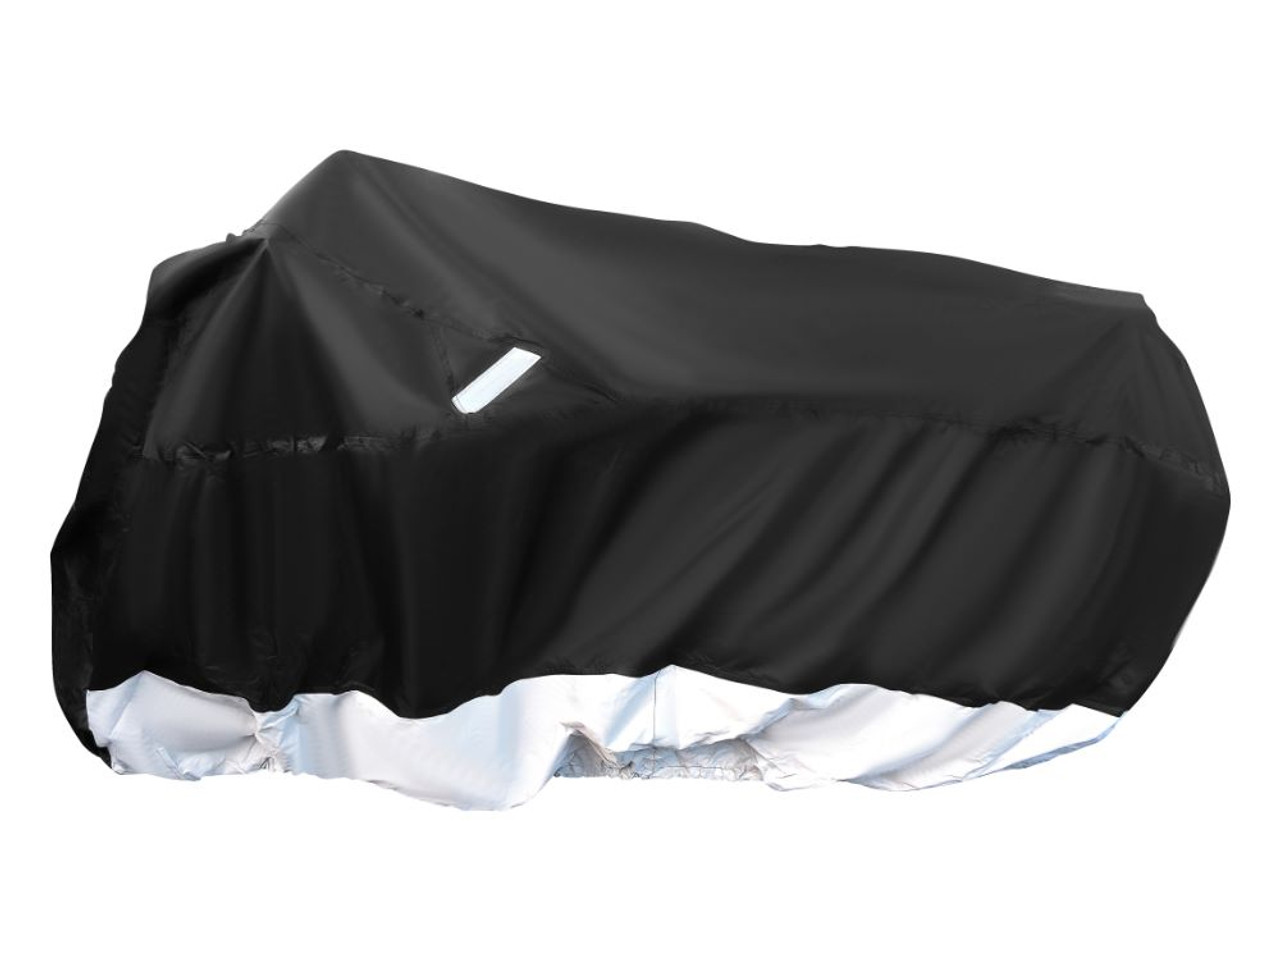 Venture Motorcycle Cover for XL touring bikes